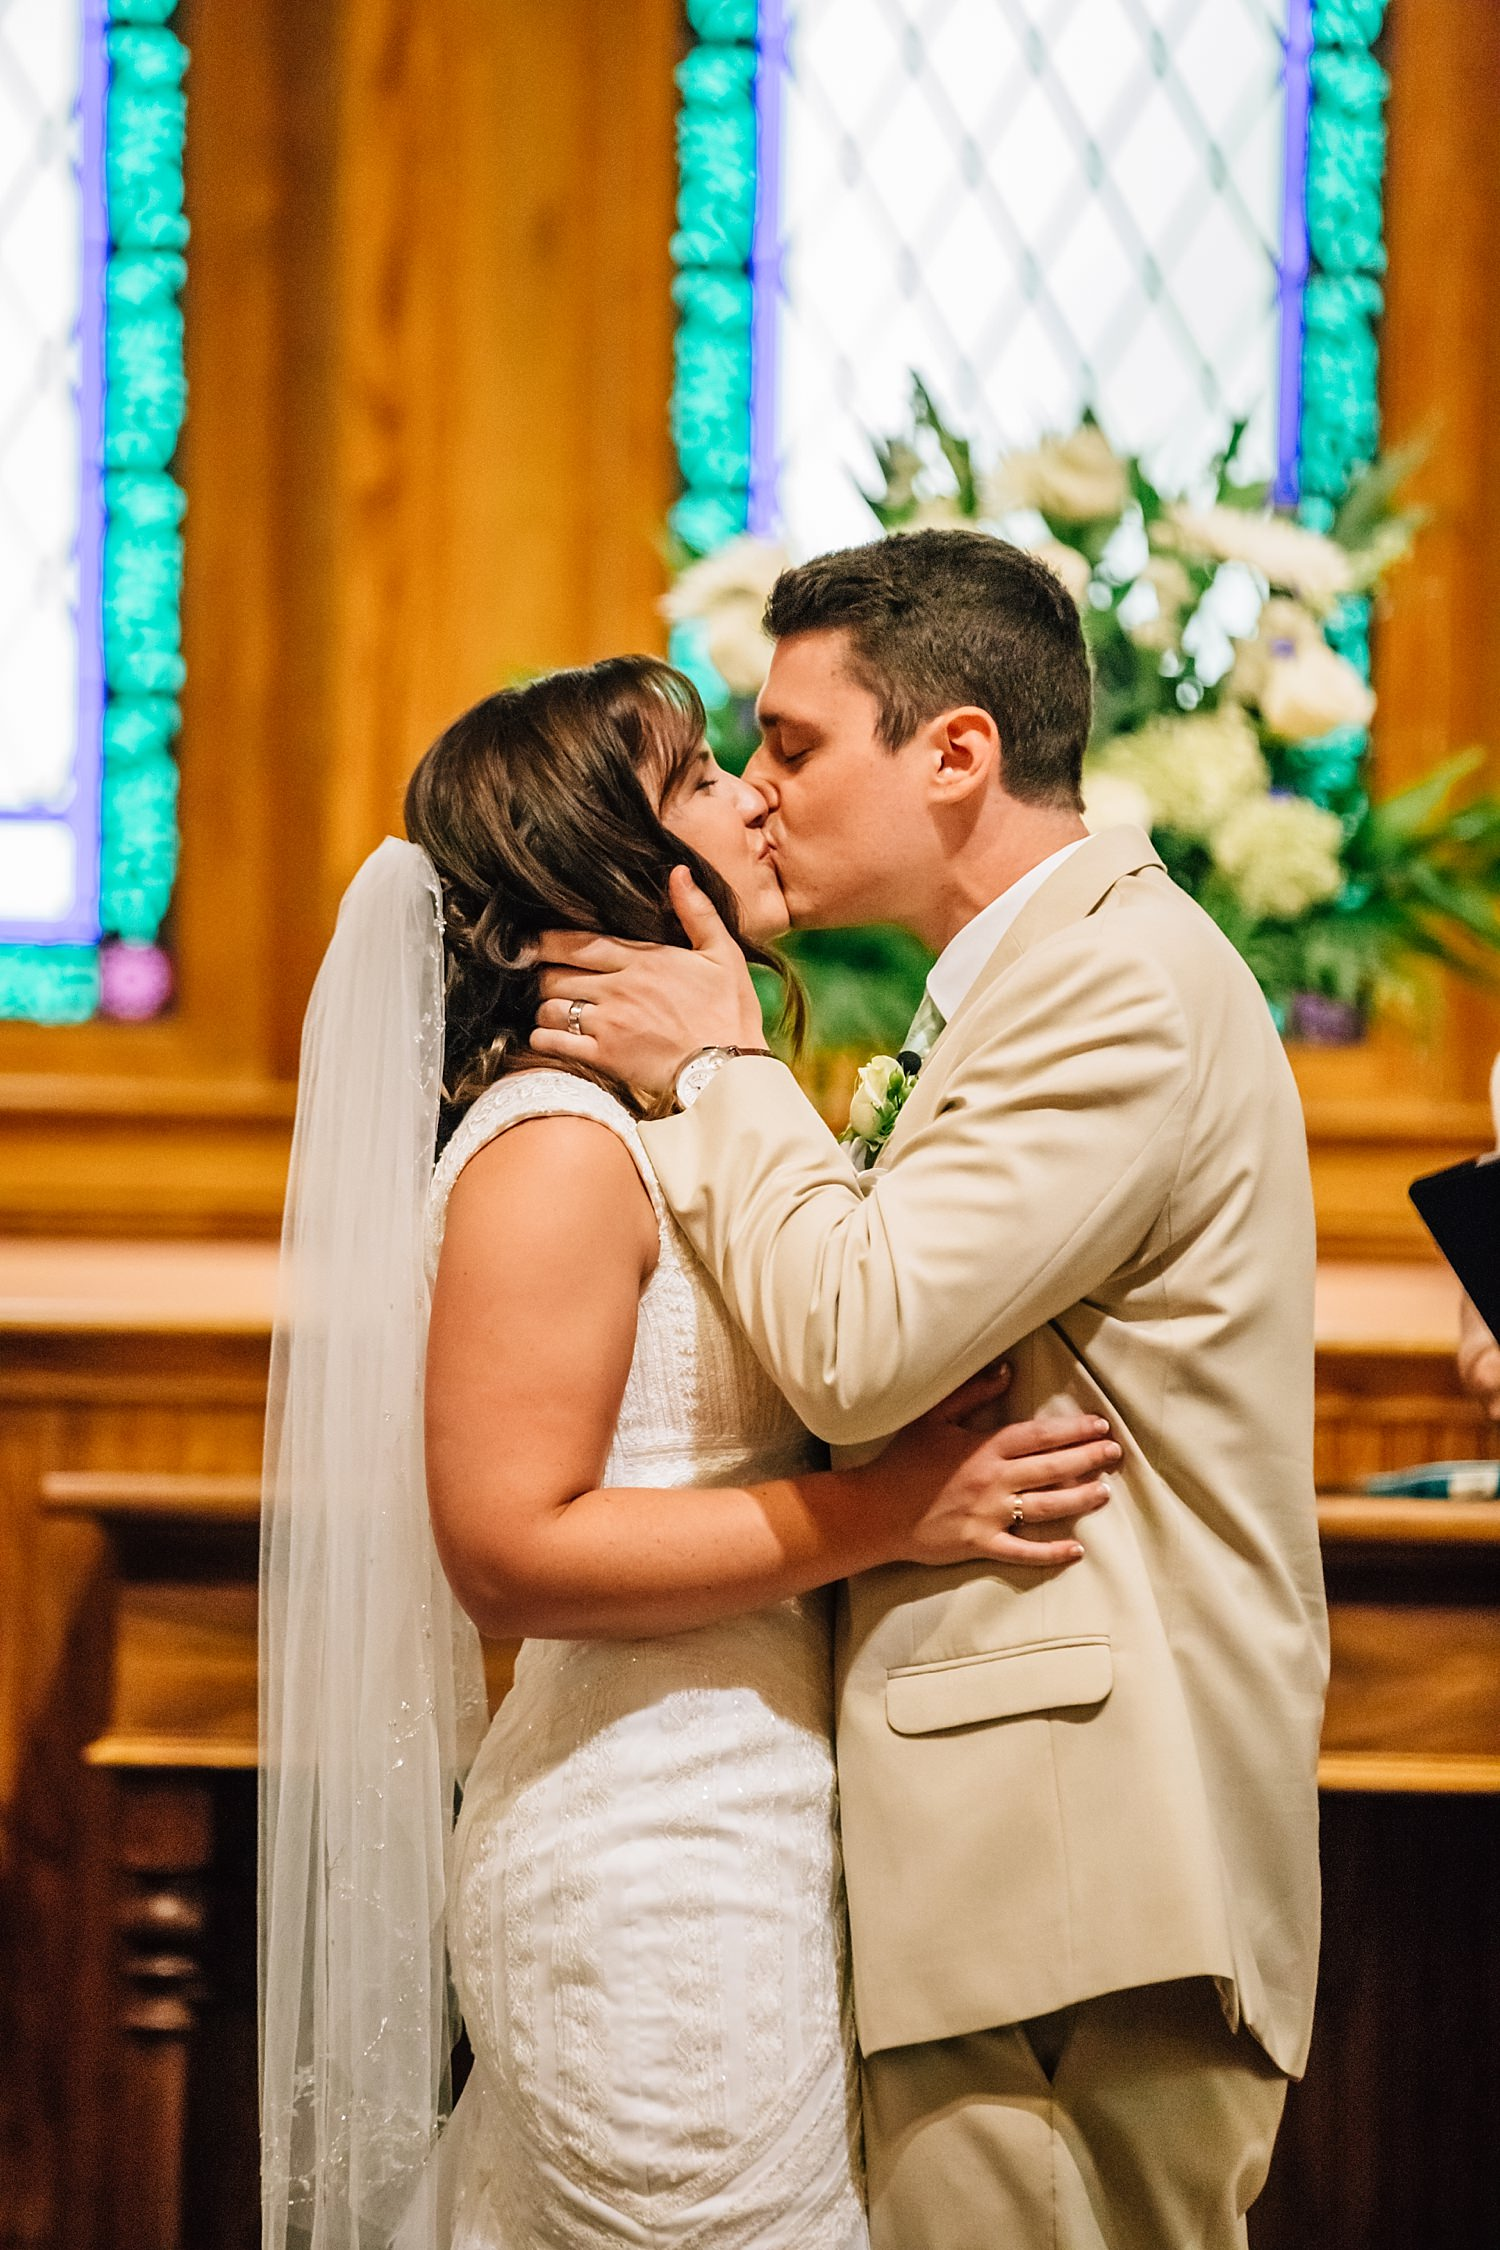 bride and groom at church wedding in columbus ohio